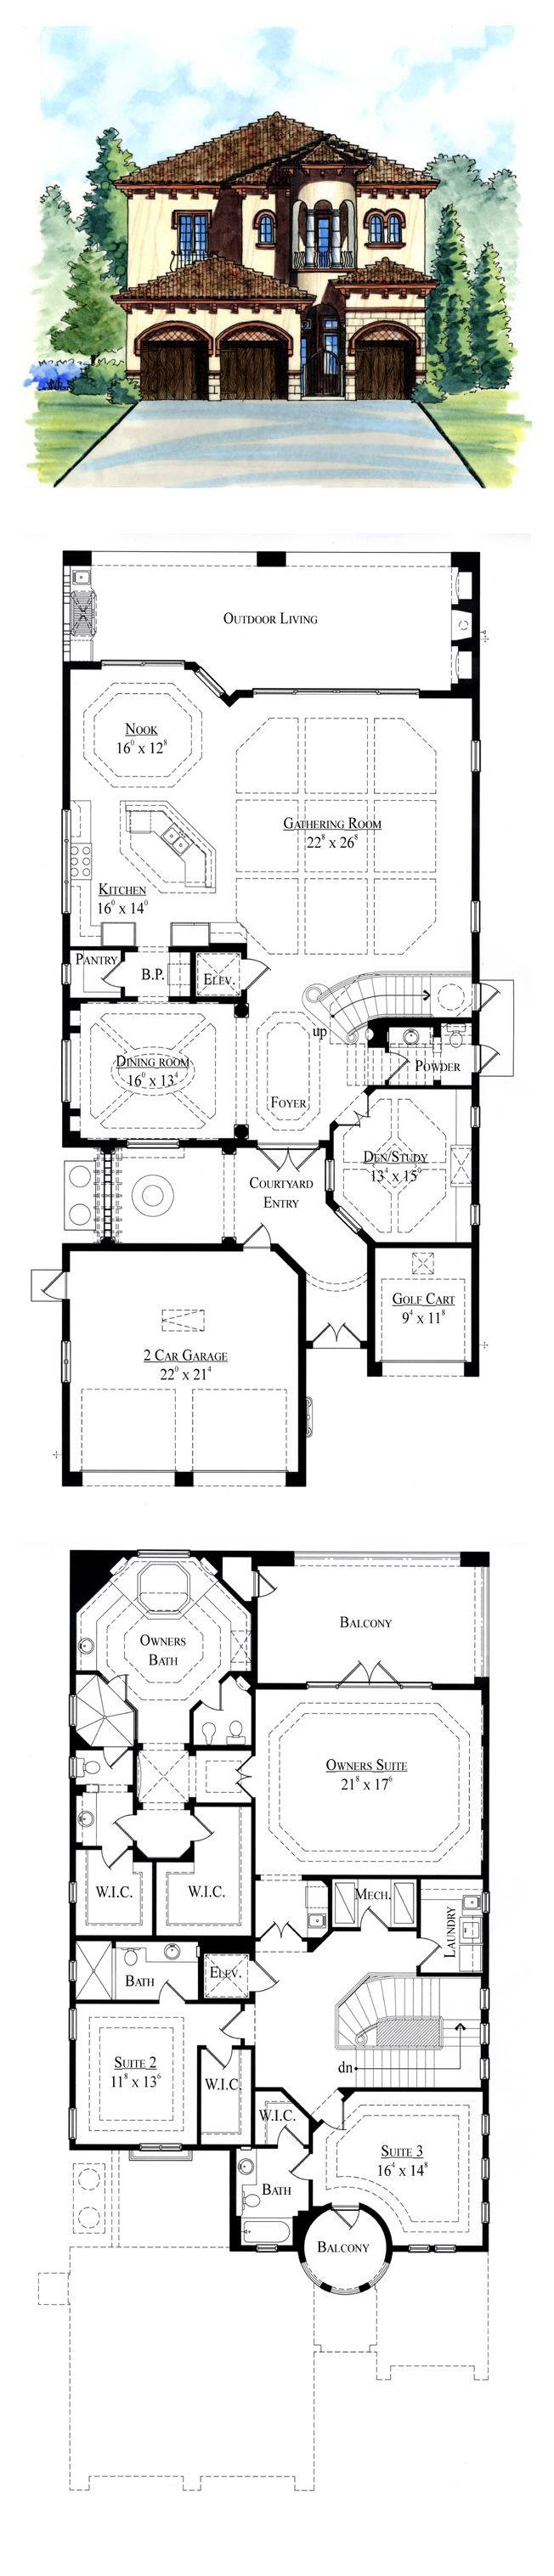 Italian Style House Plan 74283 With 3 Bed 4 Bath 2 Car Garage Dream House Plans House Plans Modern House Plans